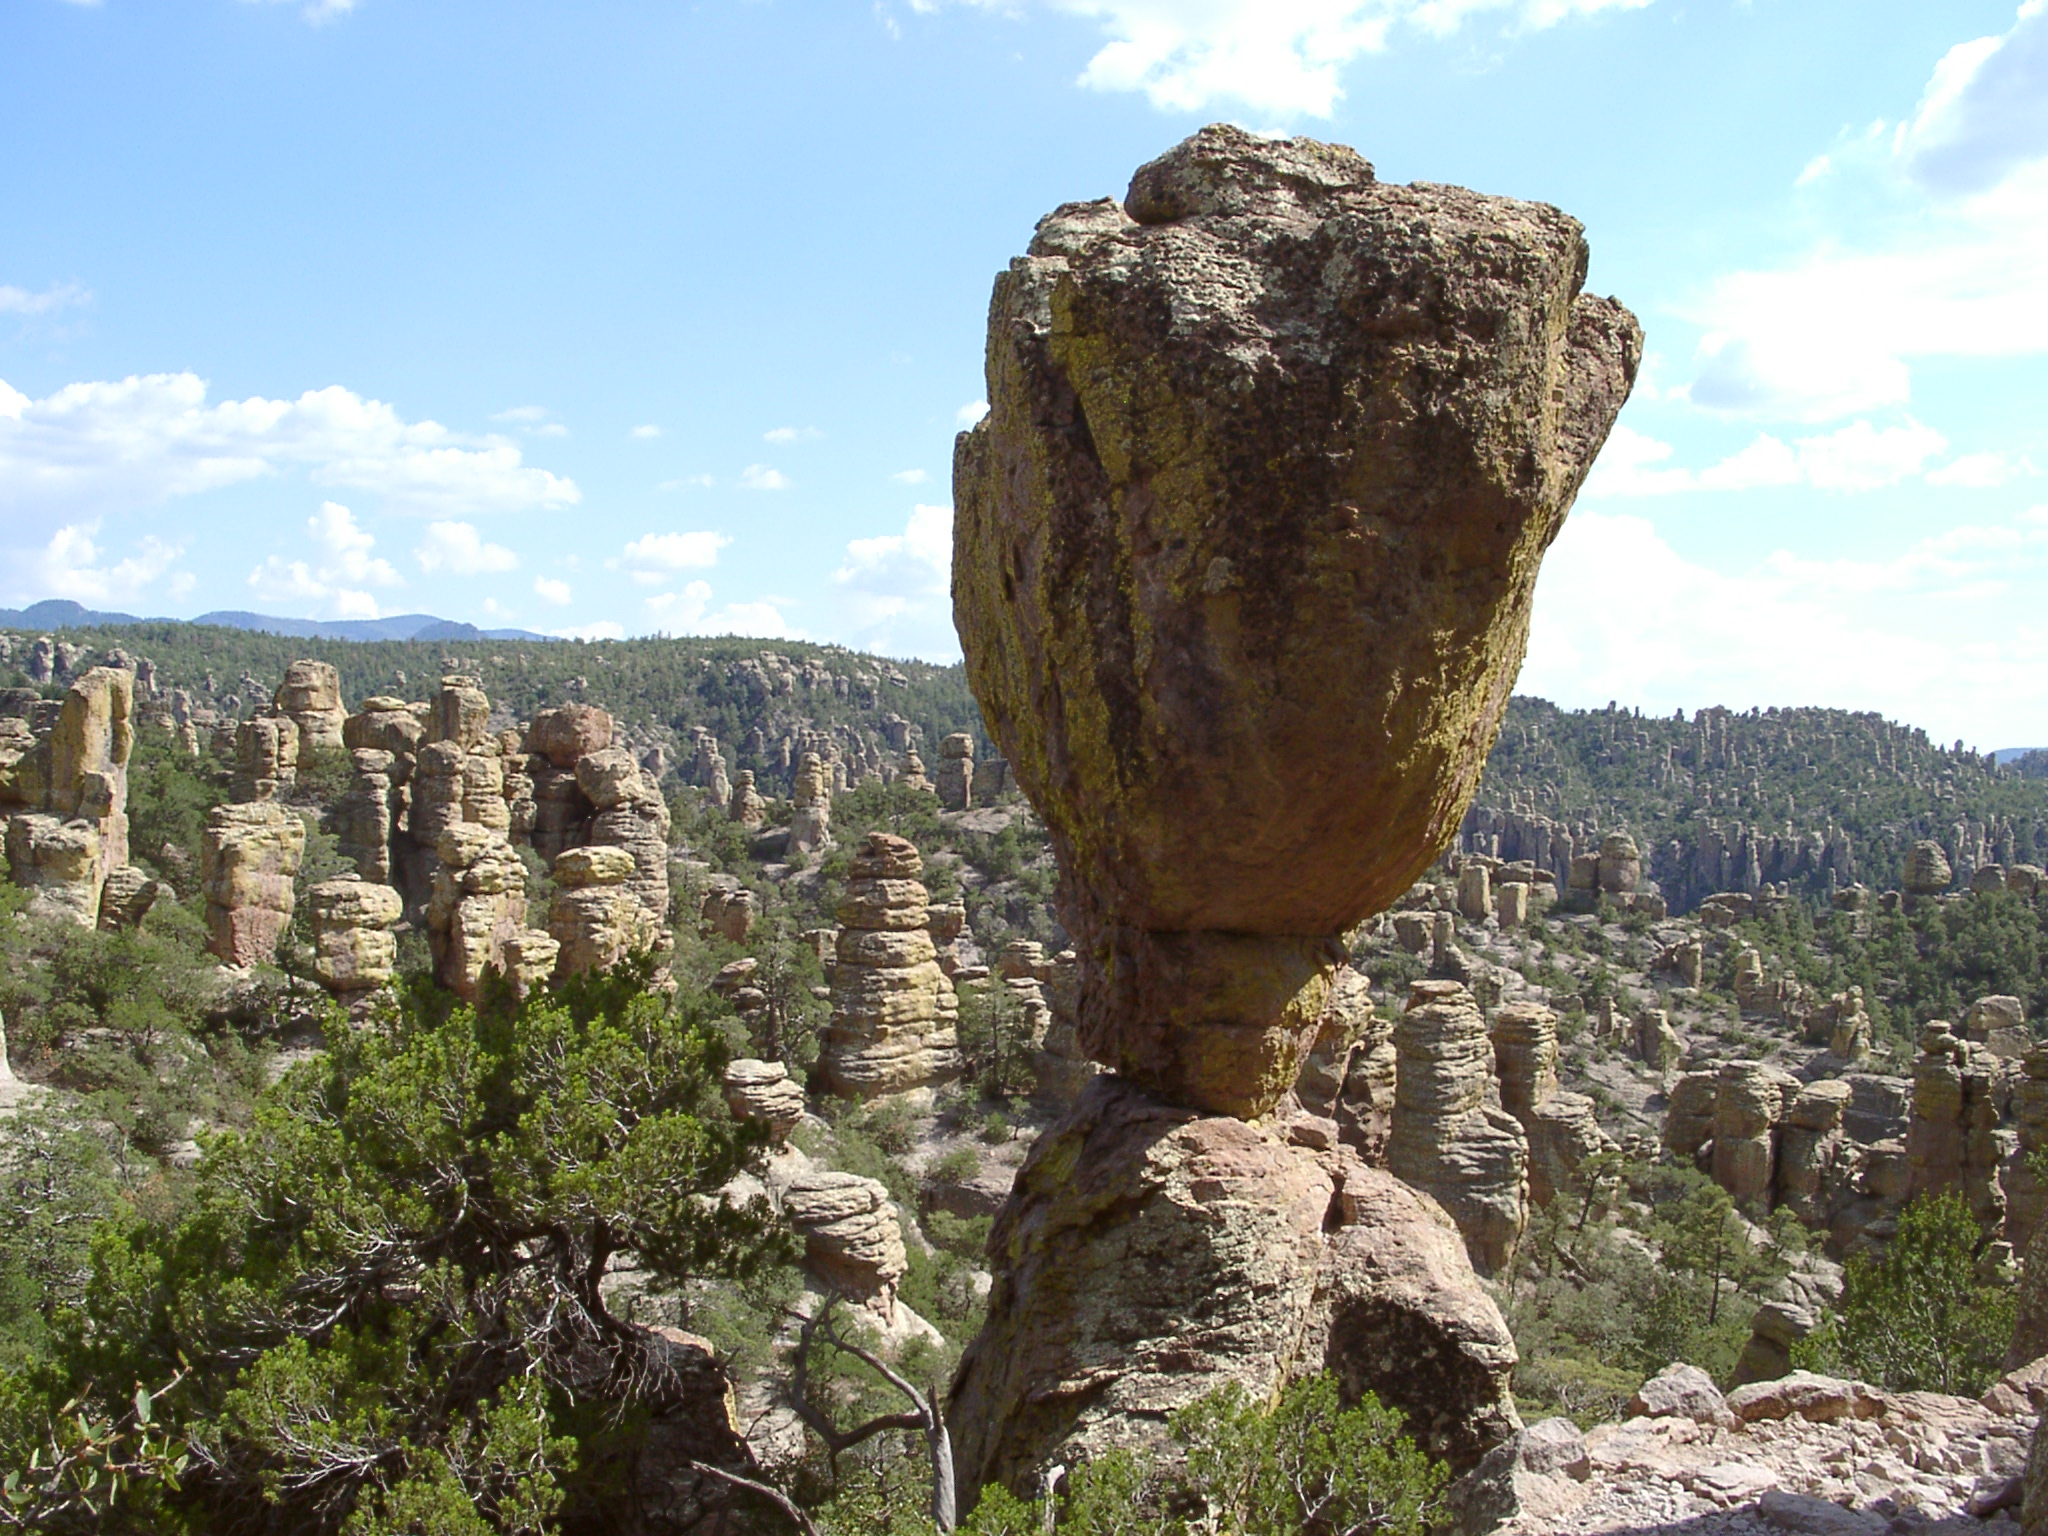 Chiracahua balance rock,  photo  by Sascha Brück /  CC BY